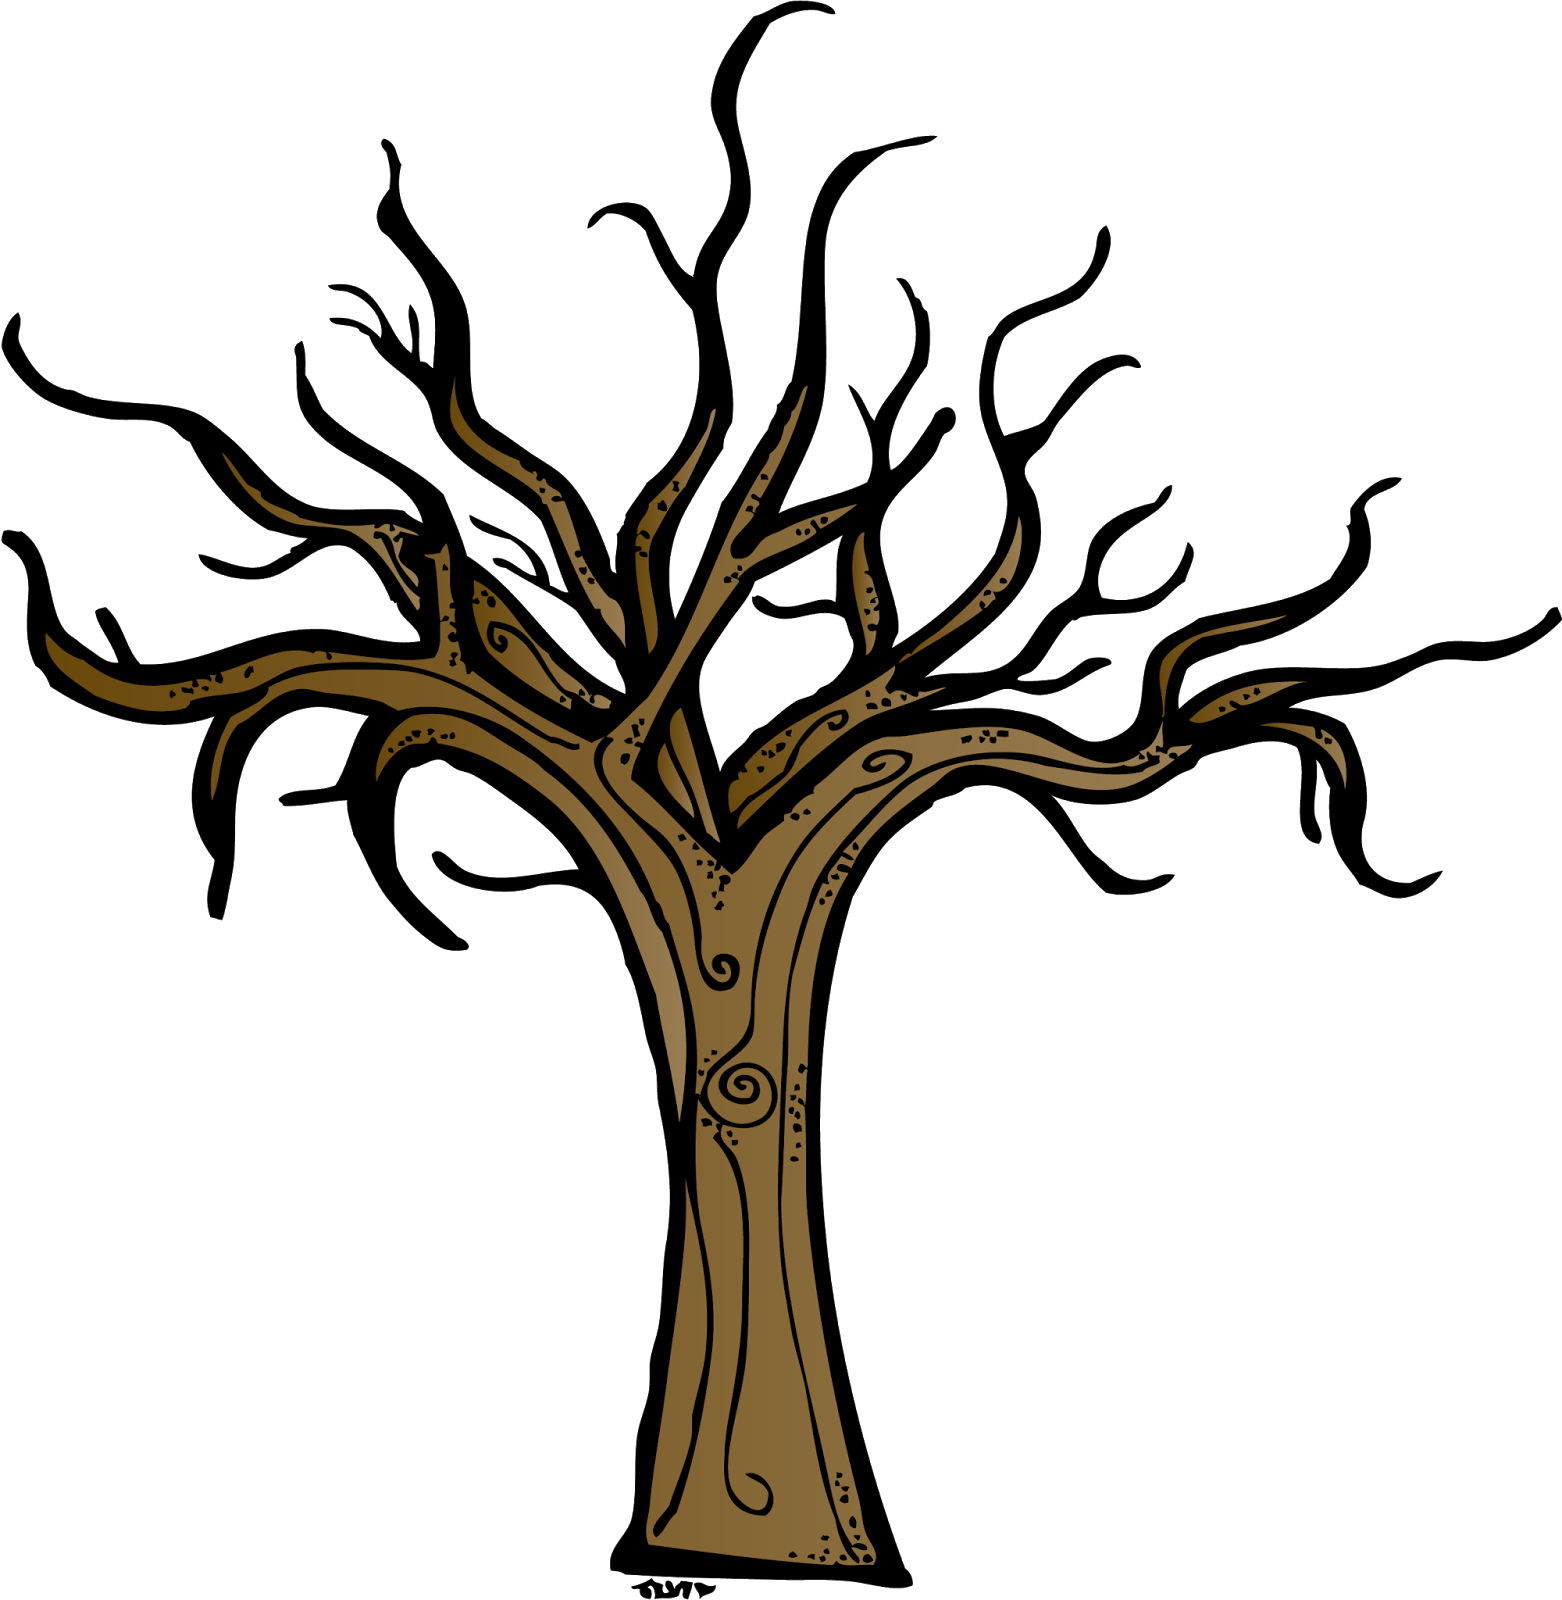 Dead Tree Trunk Clip Art Tree Trunk Clipart Png Transparent Cartoon Jing Fm Download high quality tree trunk cartoons from our collection of 41,940,205 cartoons. dead tree trunk clip art tree trunk